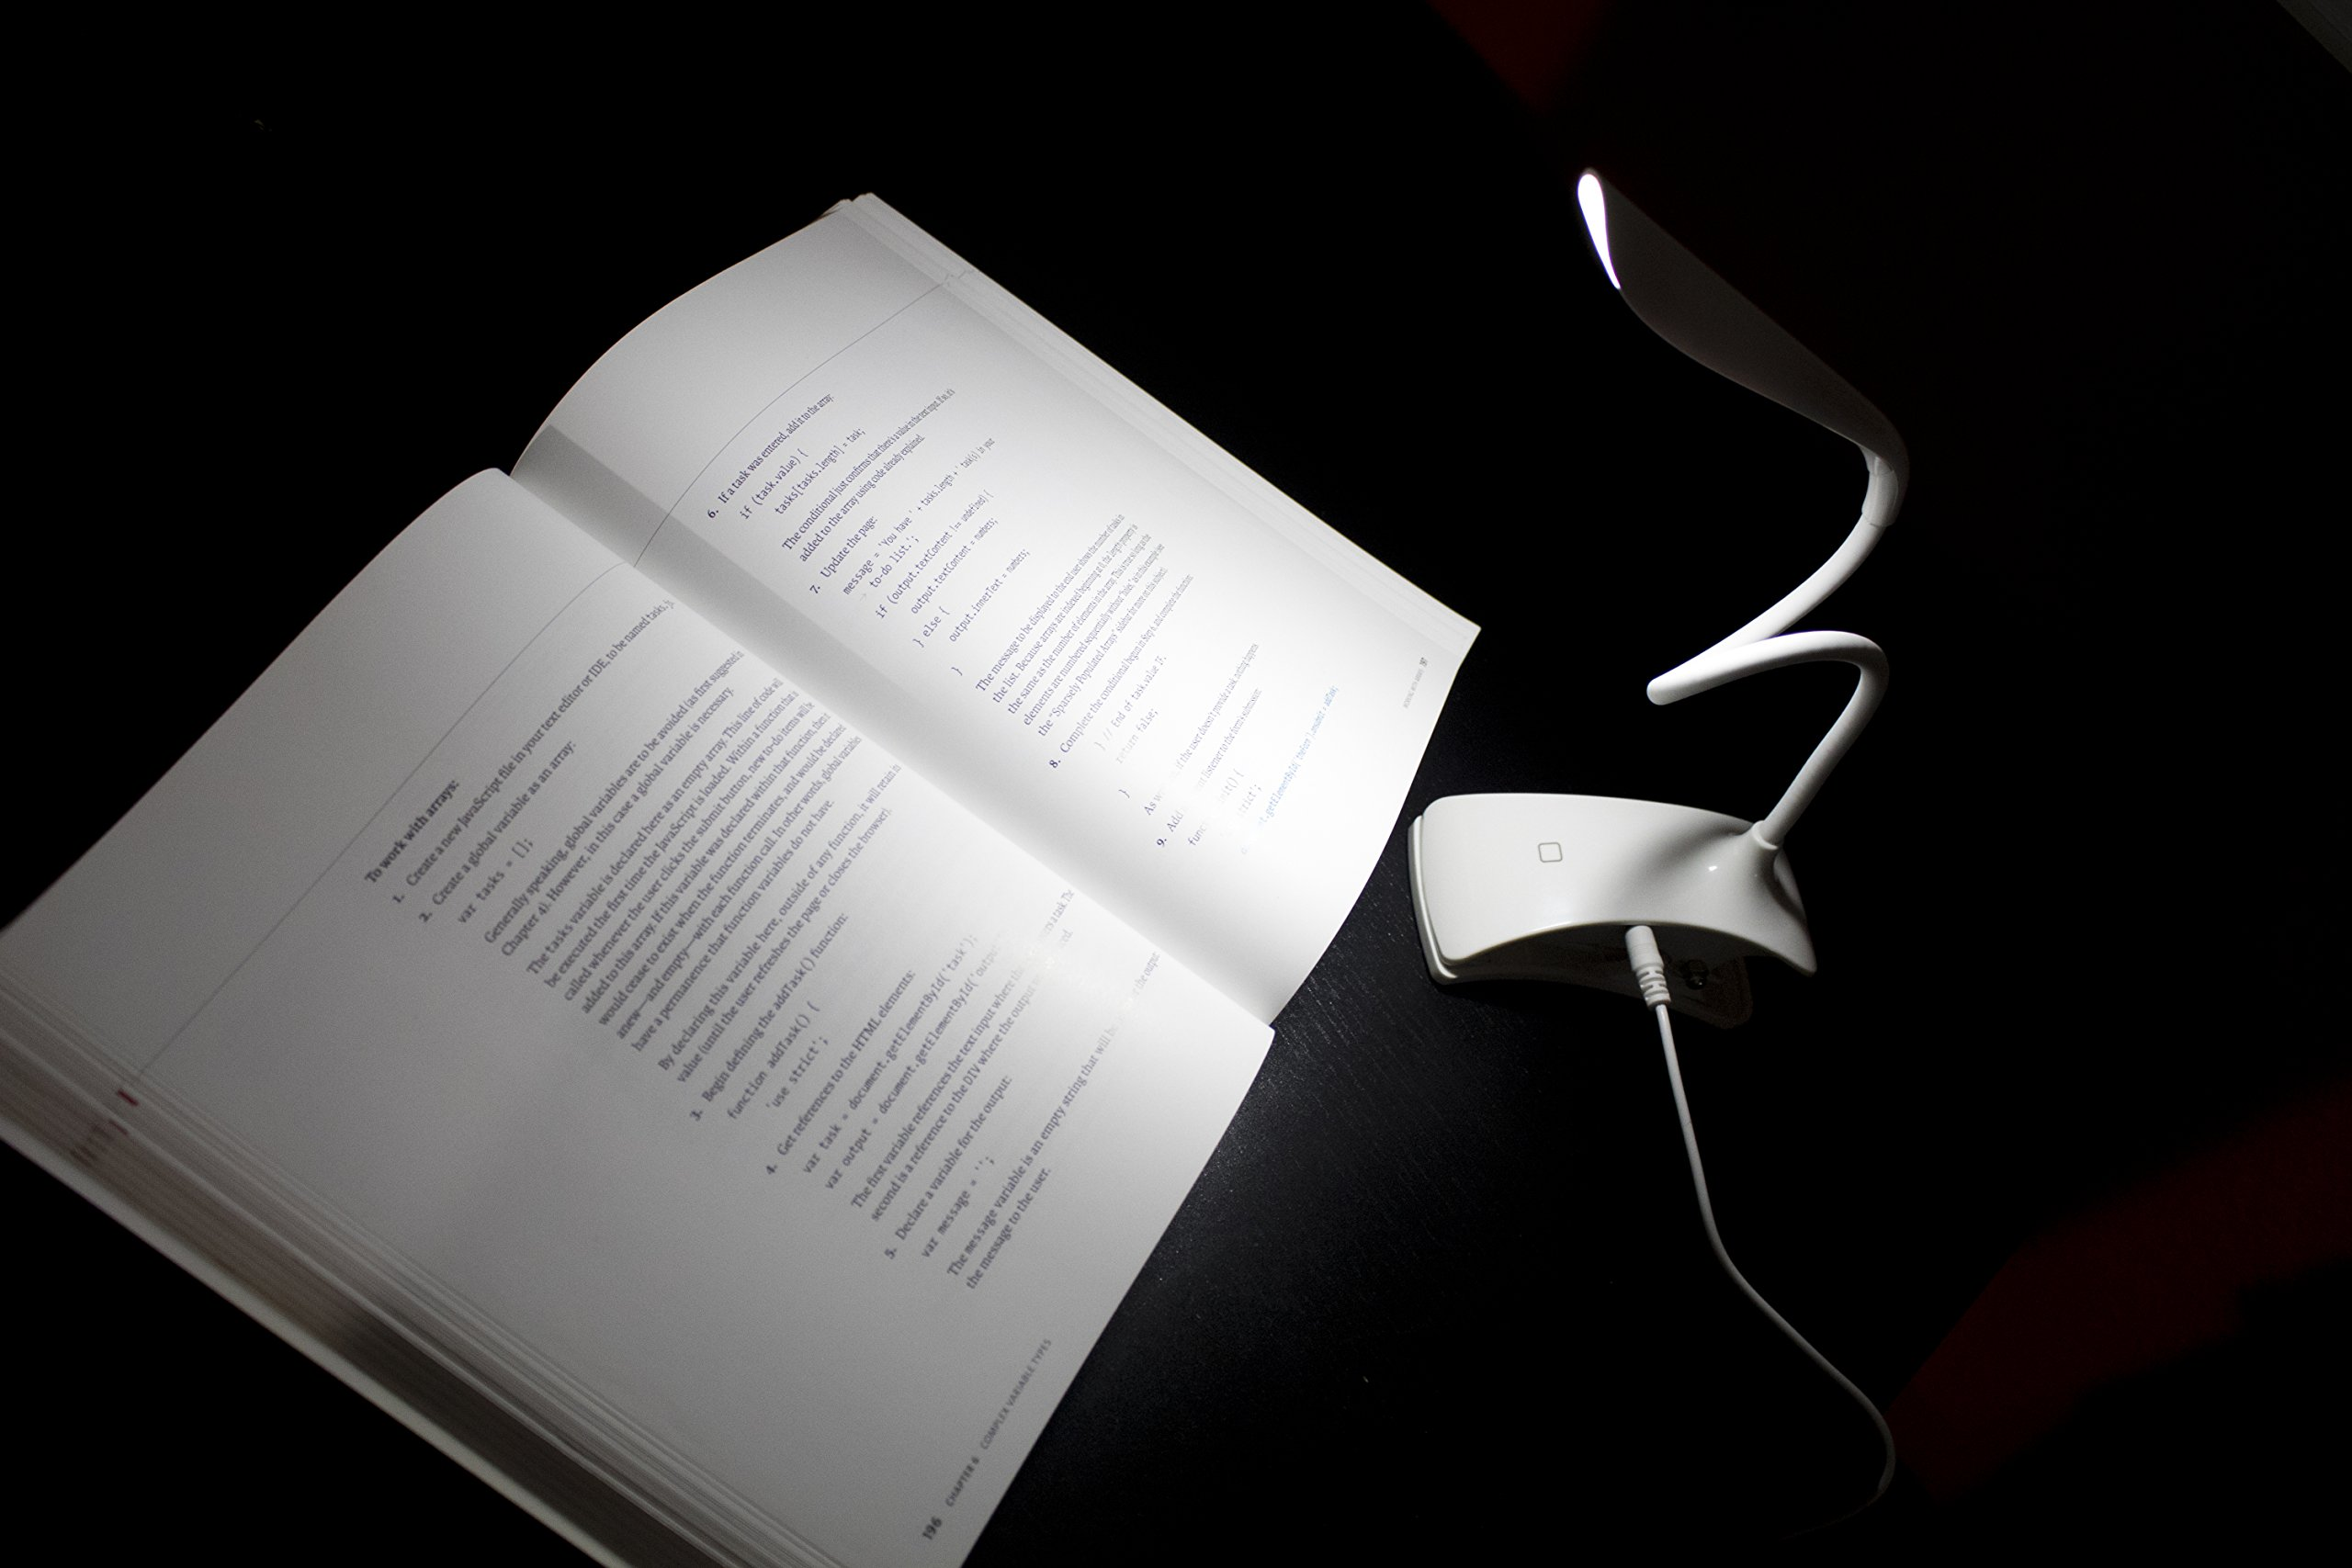 Clip-on Book Light Reading Lamp, Portable Table Light, Adjustable Led Clip Light, Anti Glare Reading Light, USB Rechargeable Computer Desk Lamp, White Daylight Bed Light. by Tesoro Wholesale™ (Image #5)